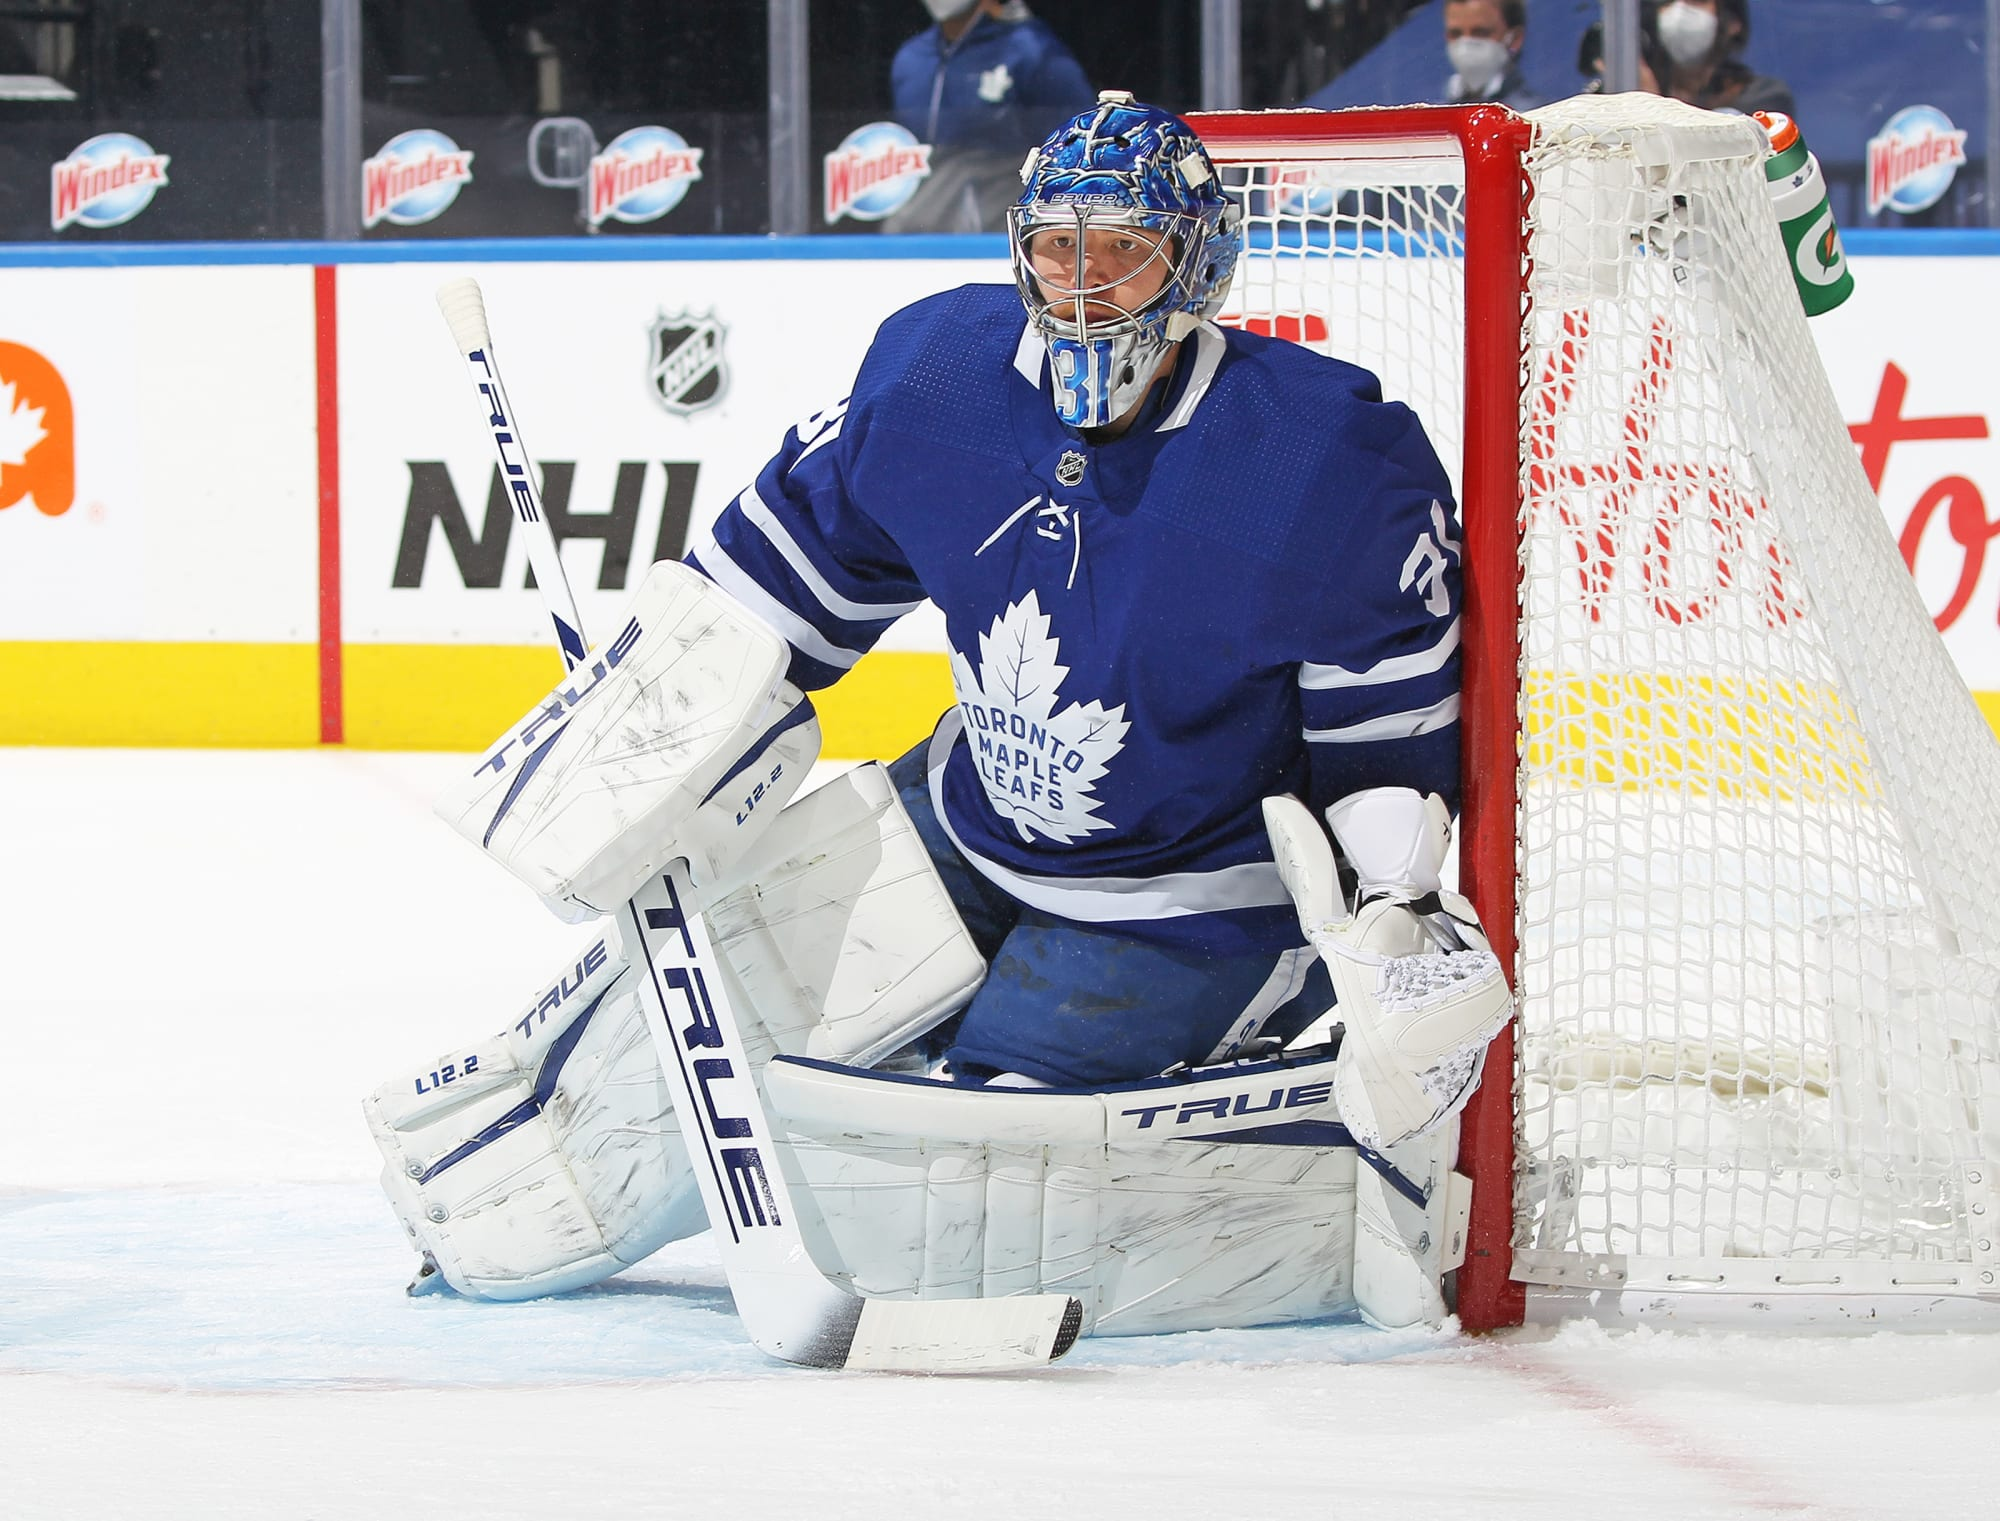 Toronto Maple Leafs: Andersen to Marlies but He Should Just Shut It Down